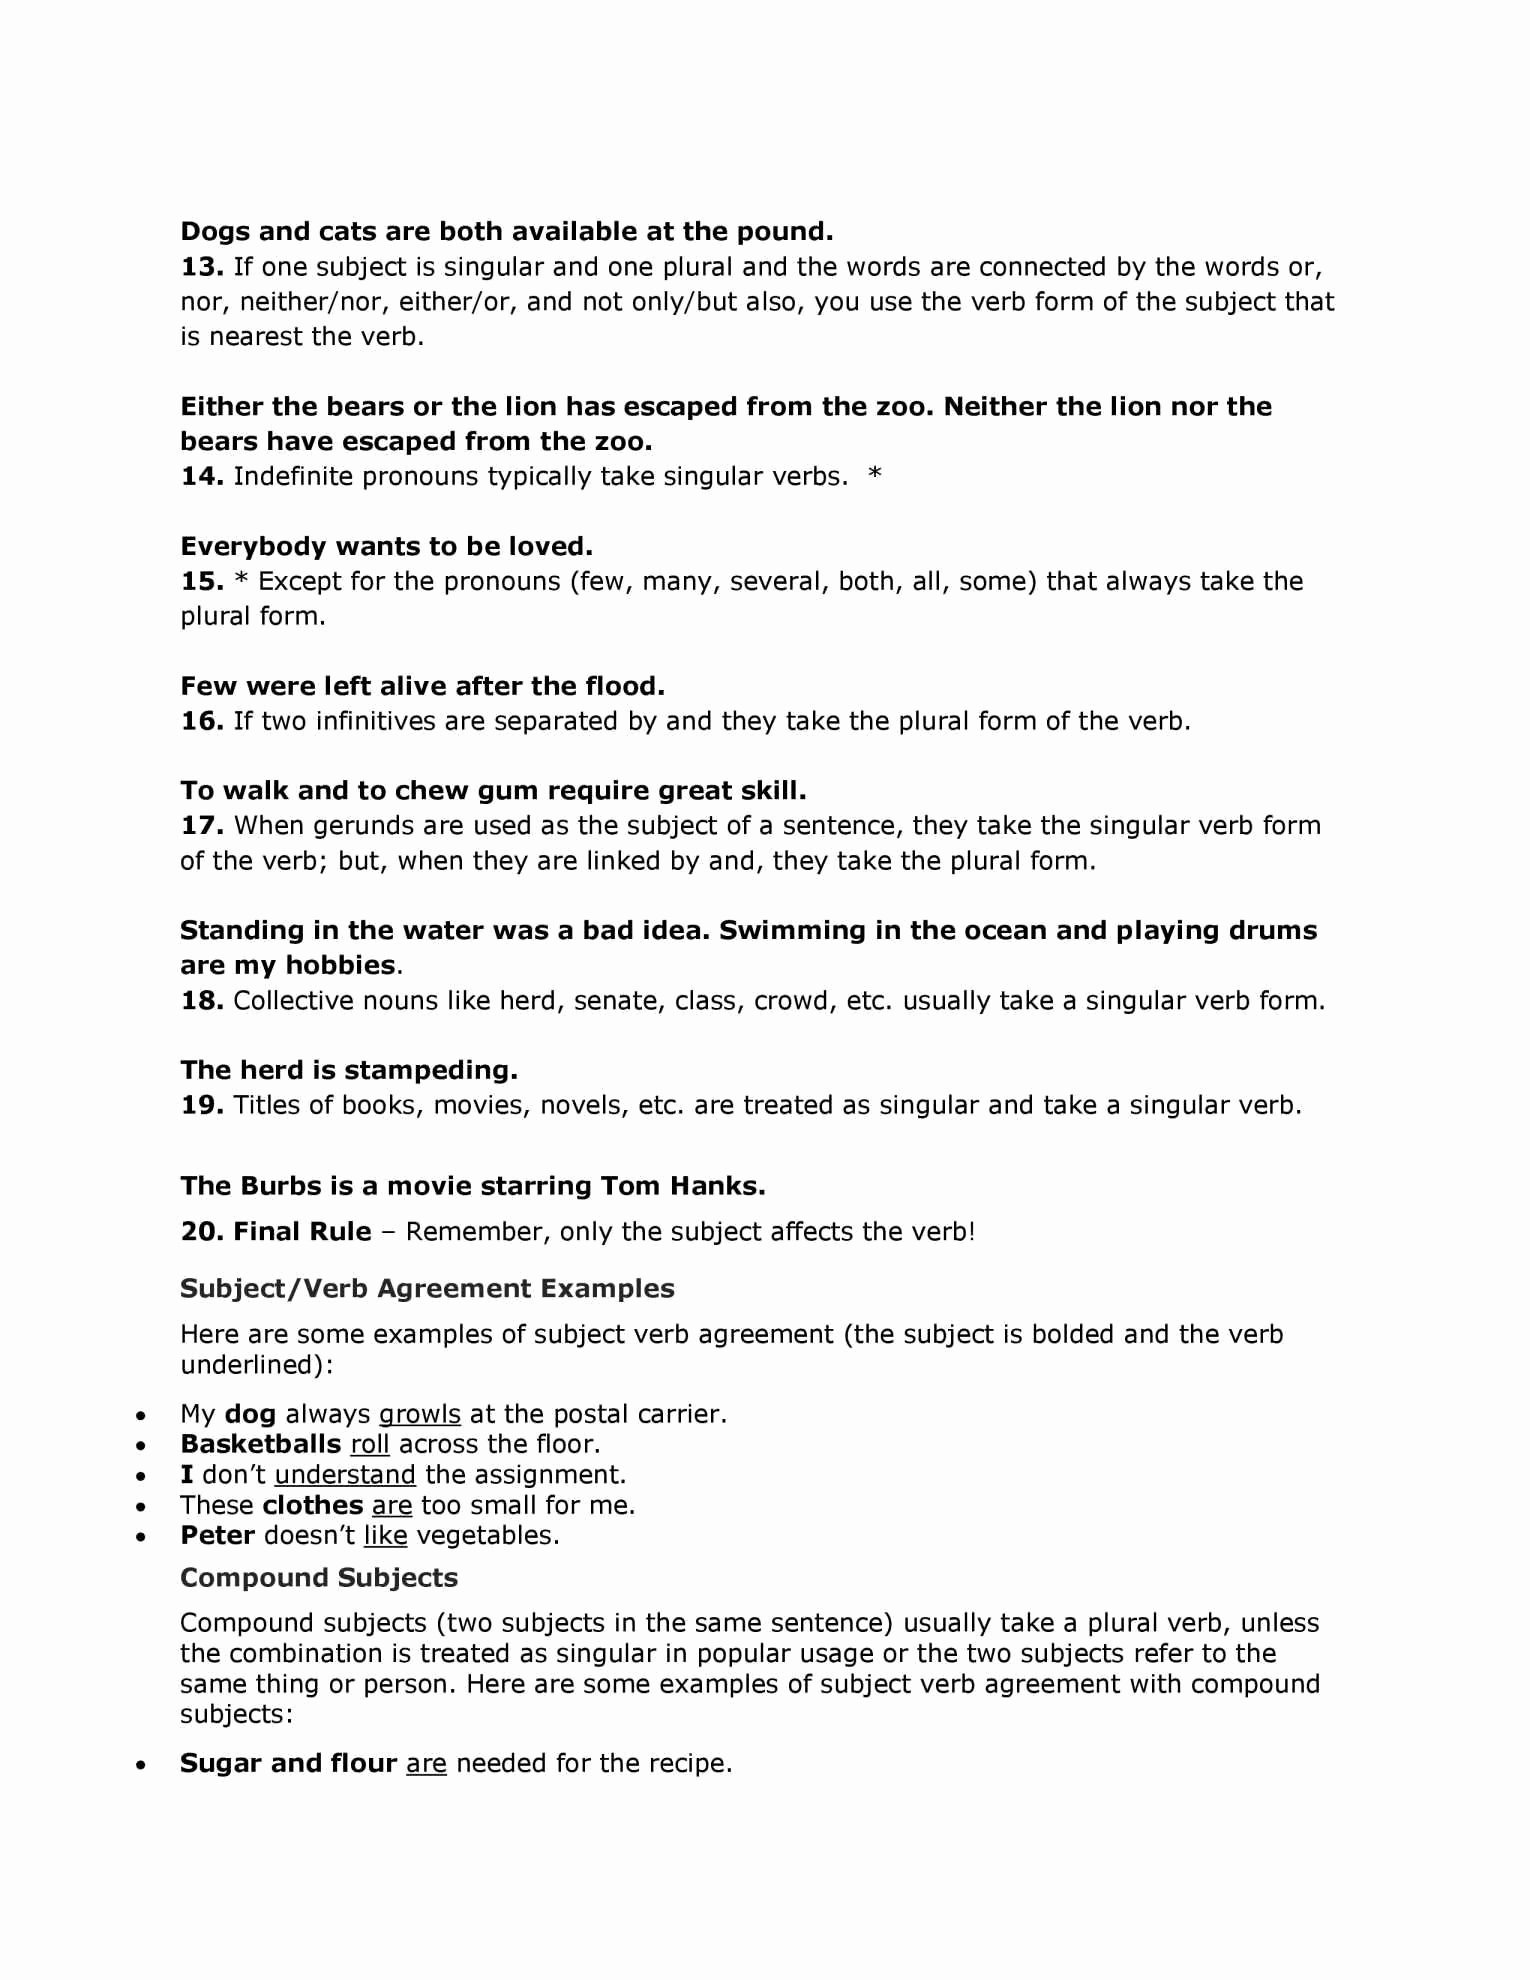 Cnn Student News Worksheet Elegant Cnn Student News Worksheet Worksheet Idea Template